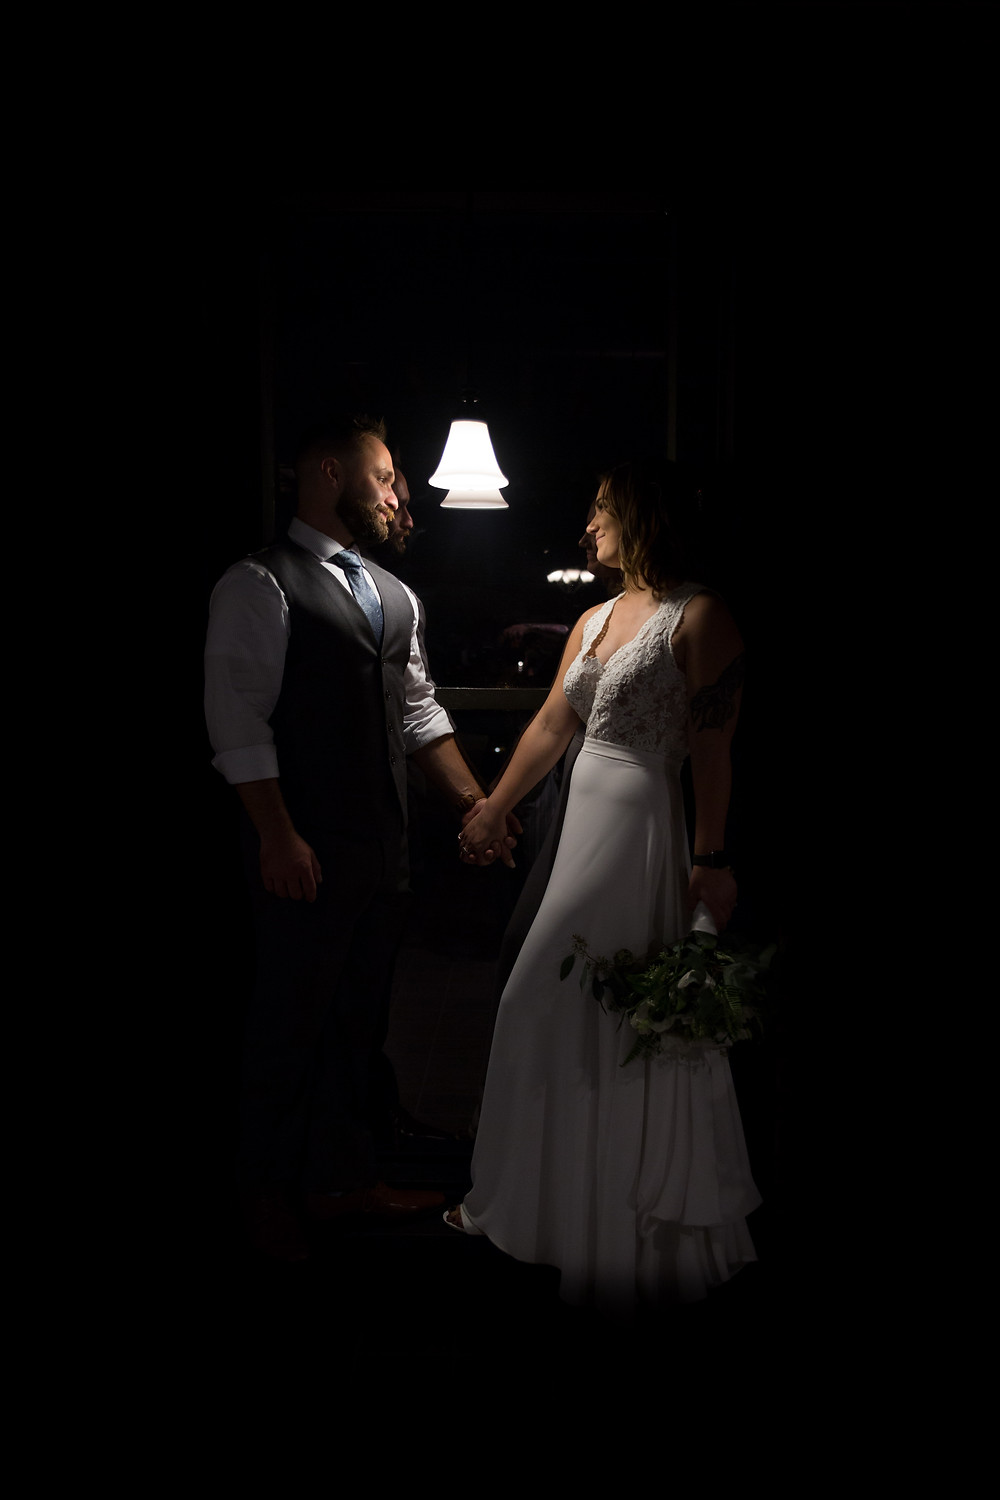 dark and moody bride and groom wedding photo inside Buffalo's Pearl St Grill